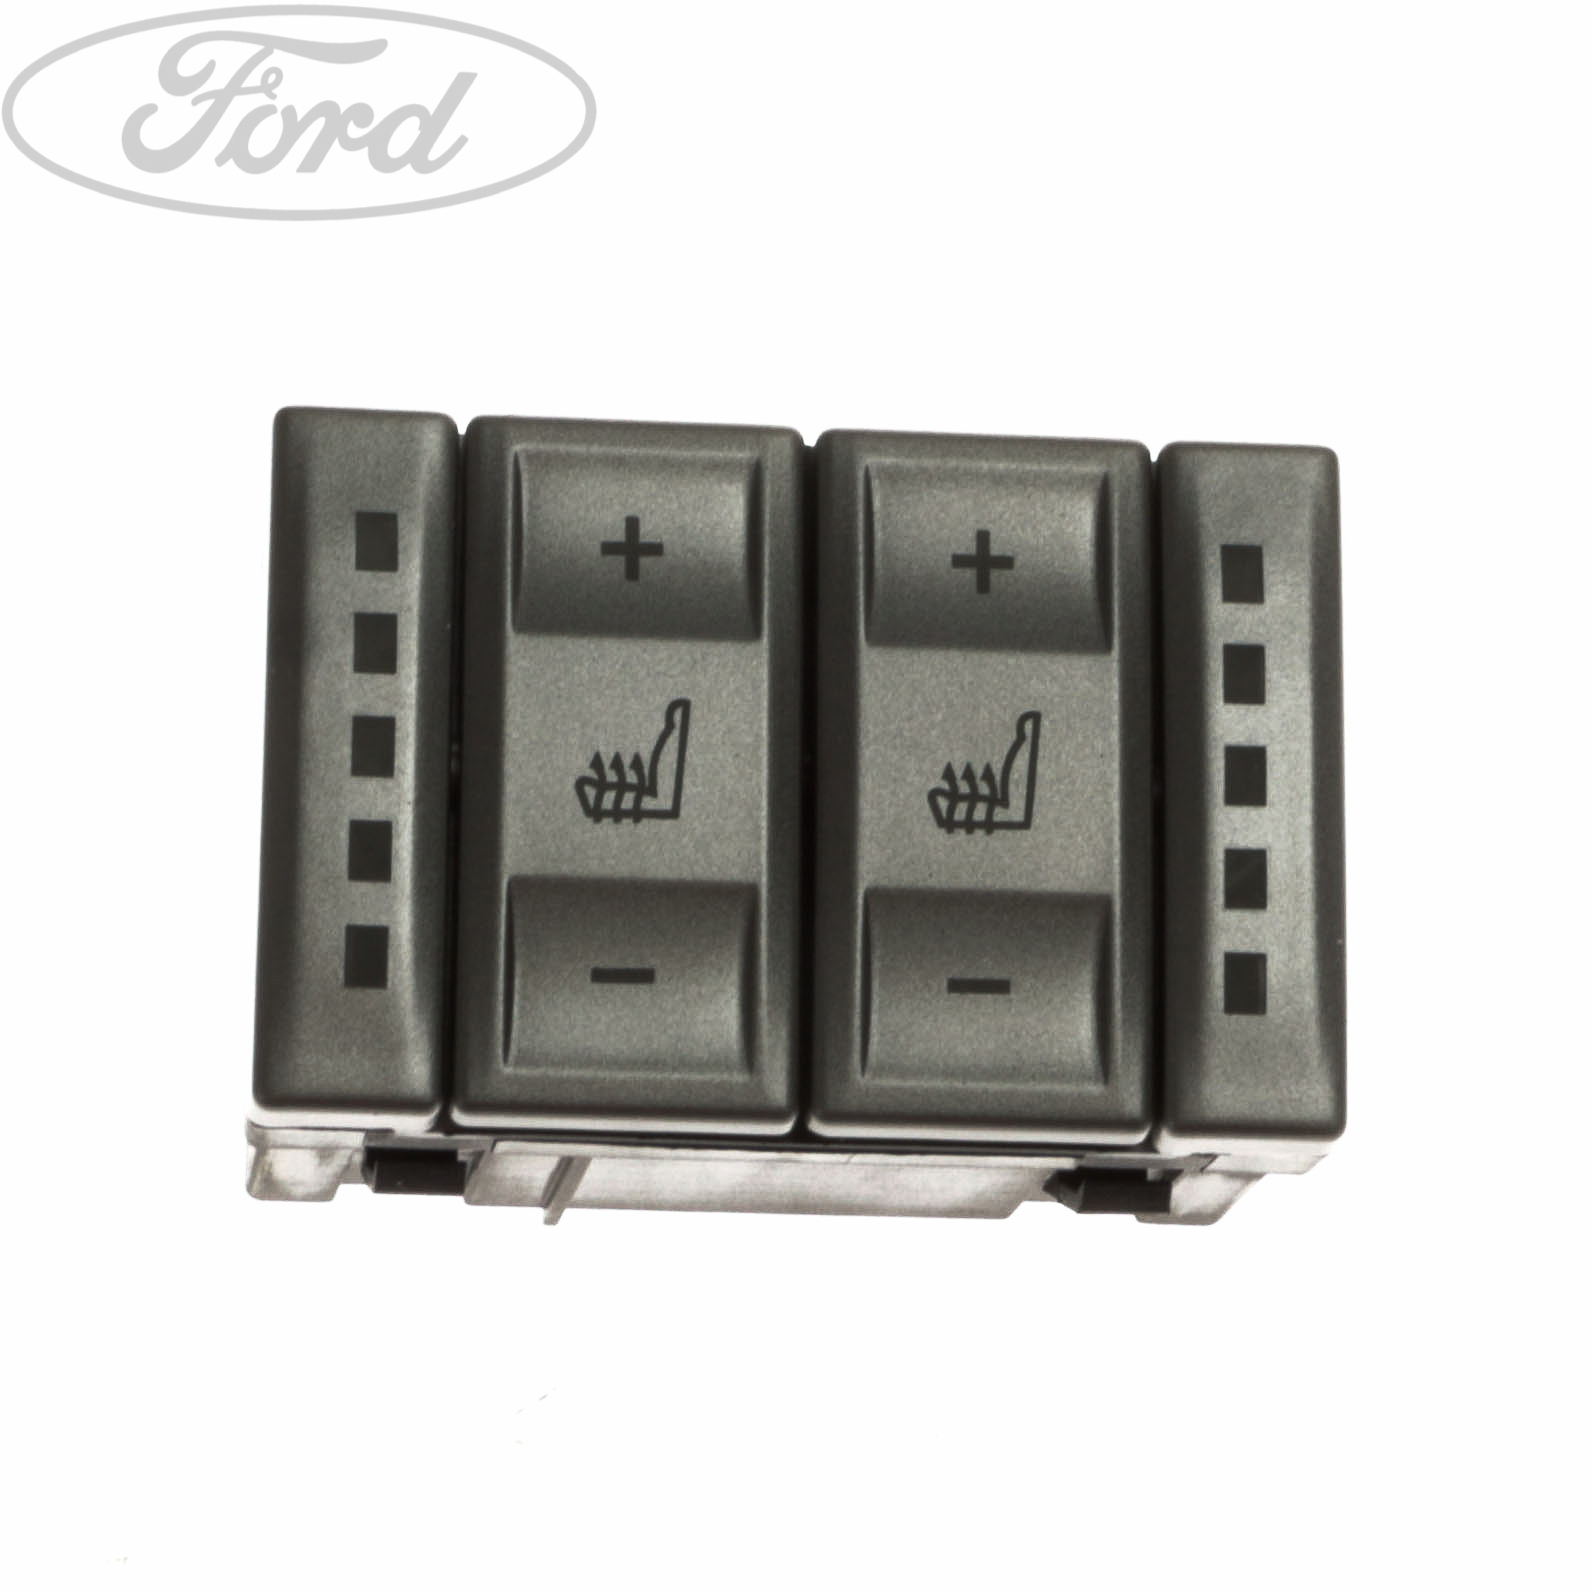 hight resolution of genuine ford mondeo mk4 galaxy s max front heated seats panel